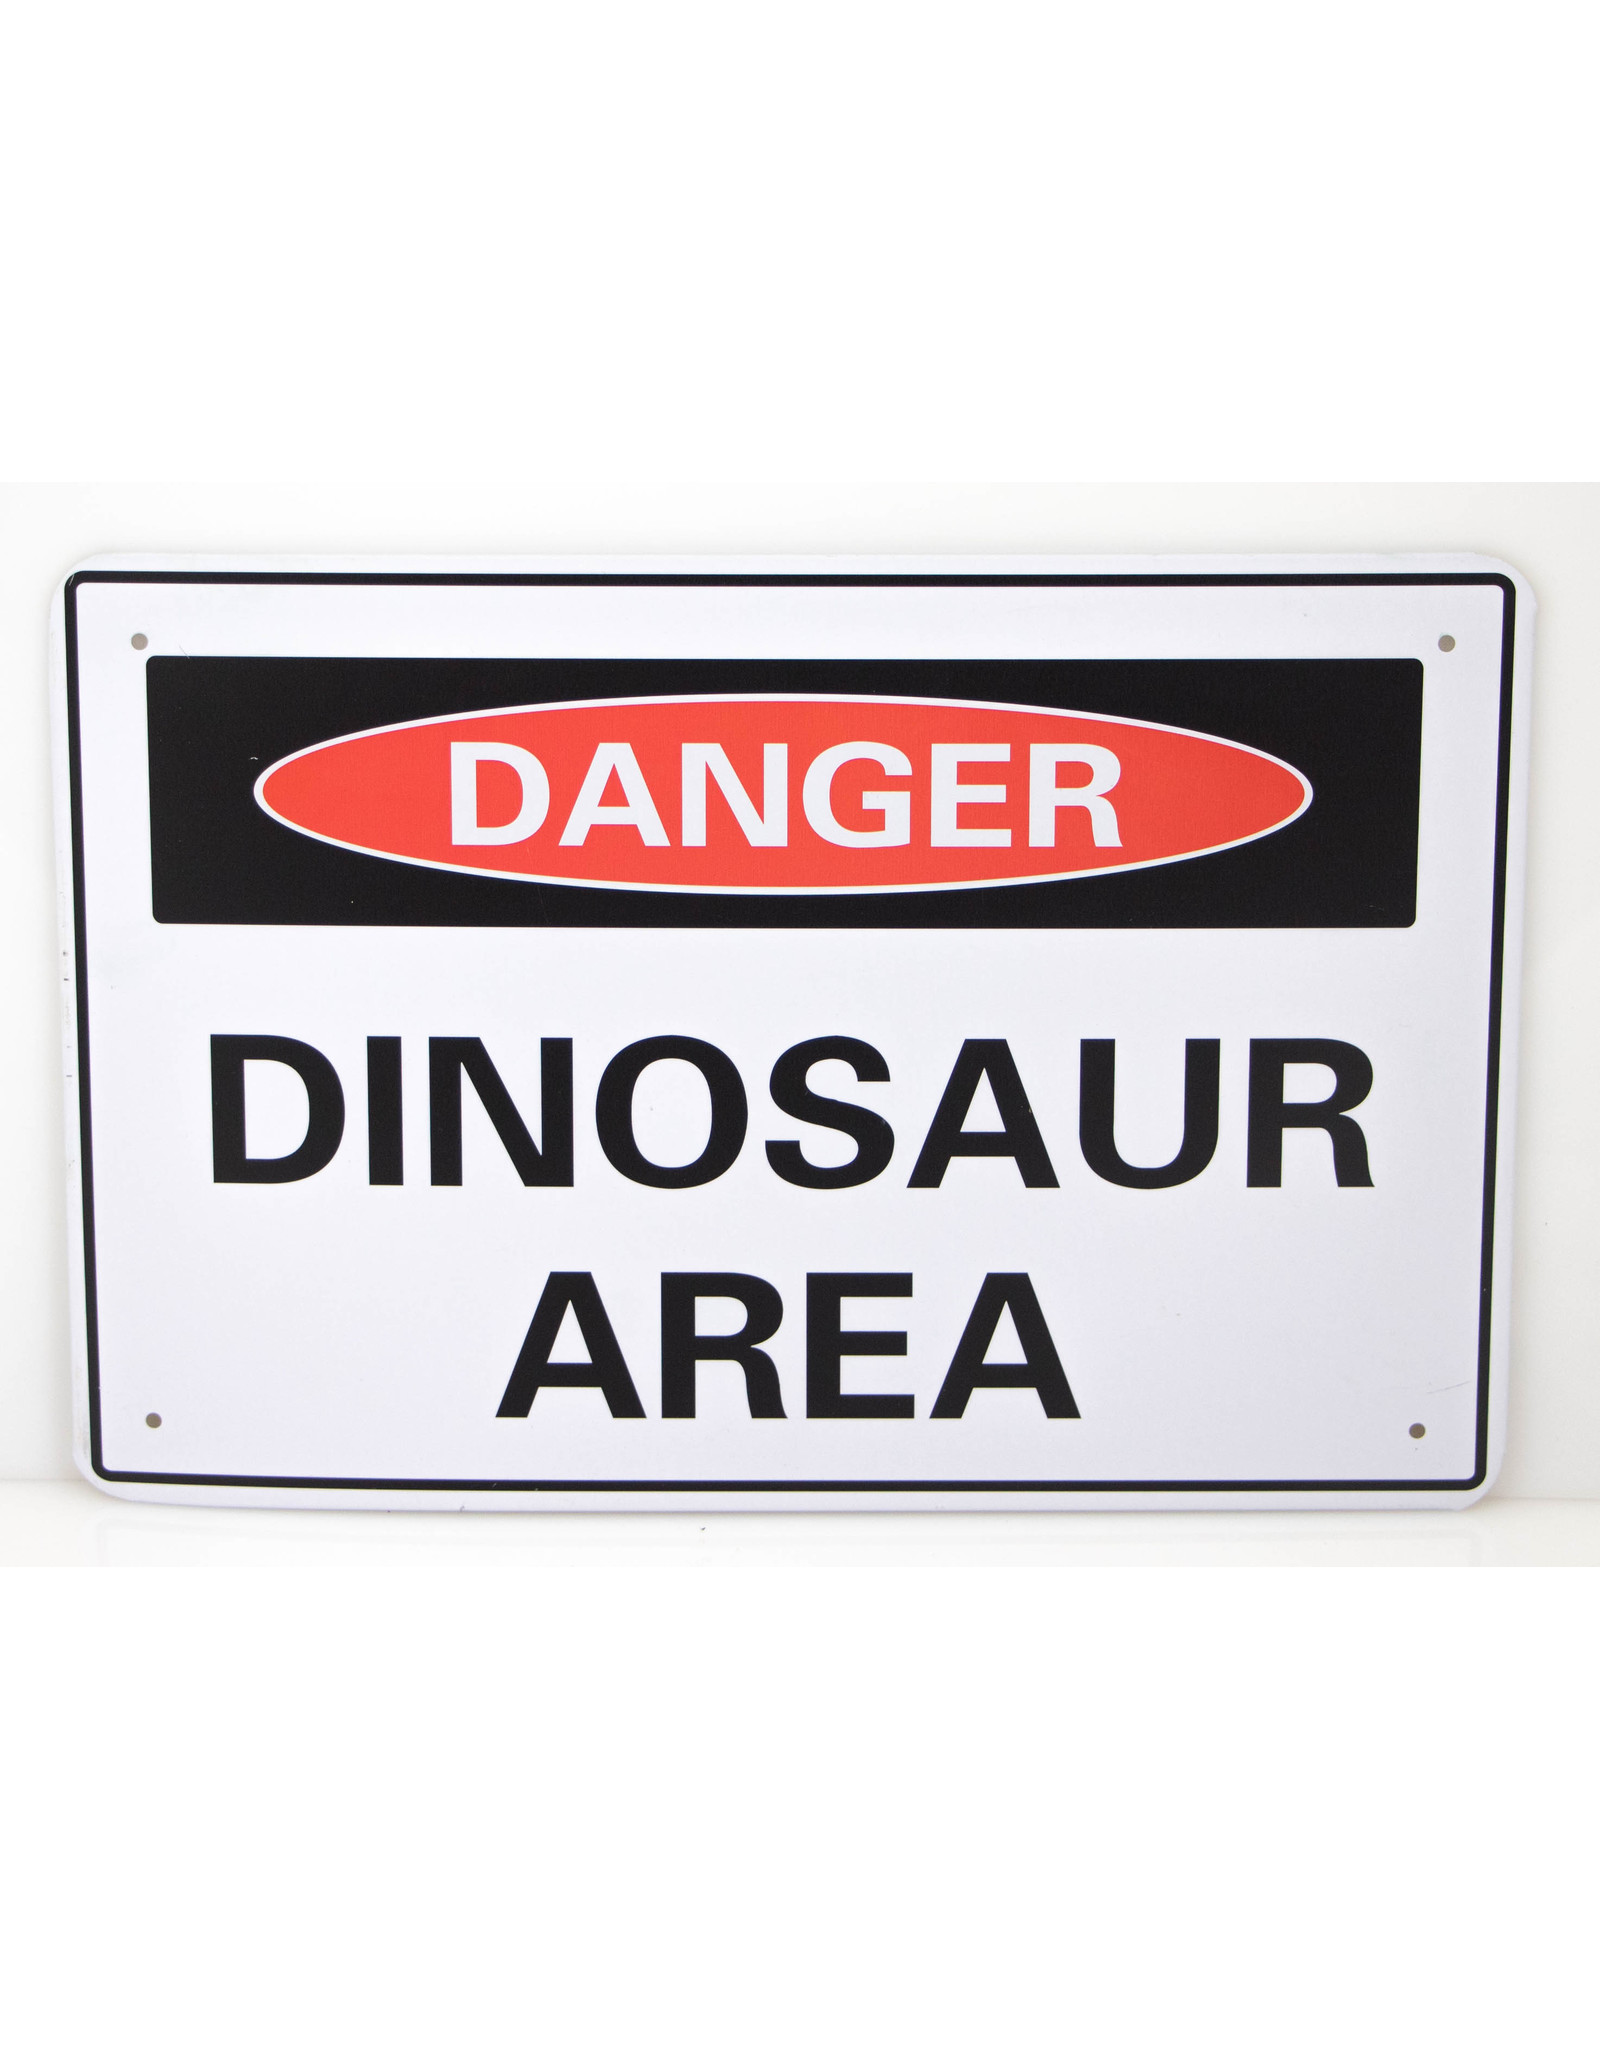 Danger Dinosaur area